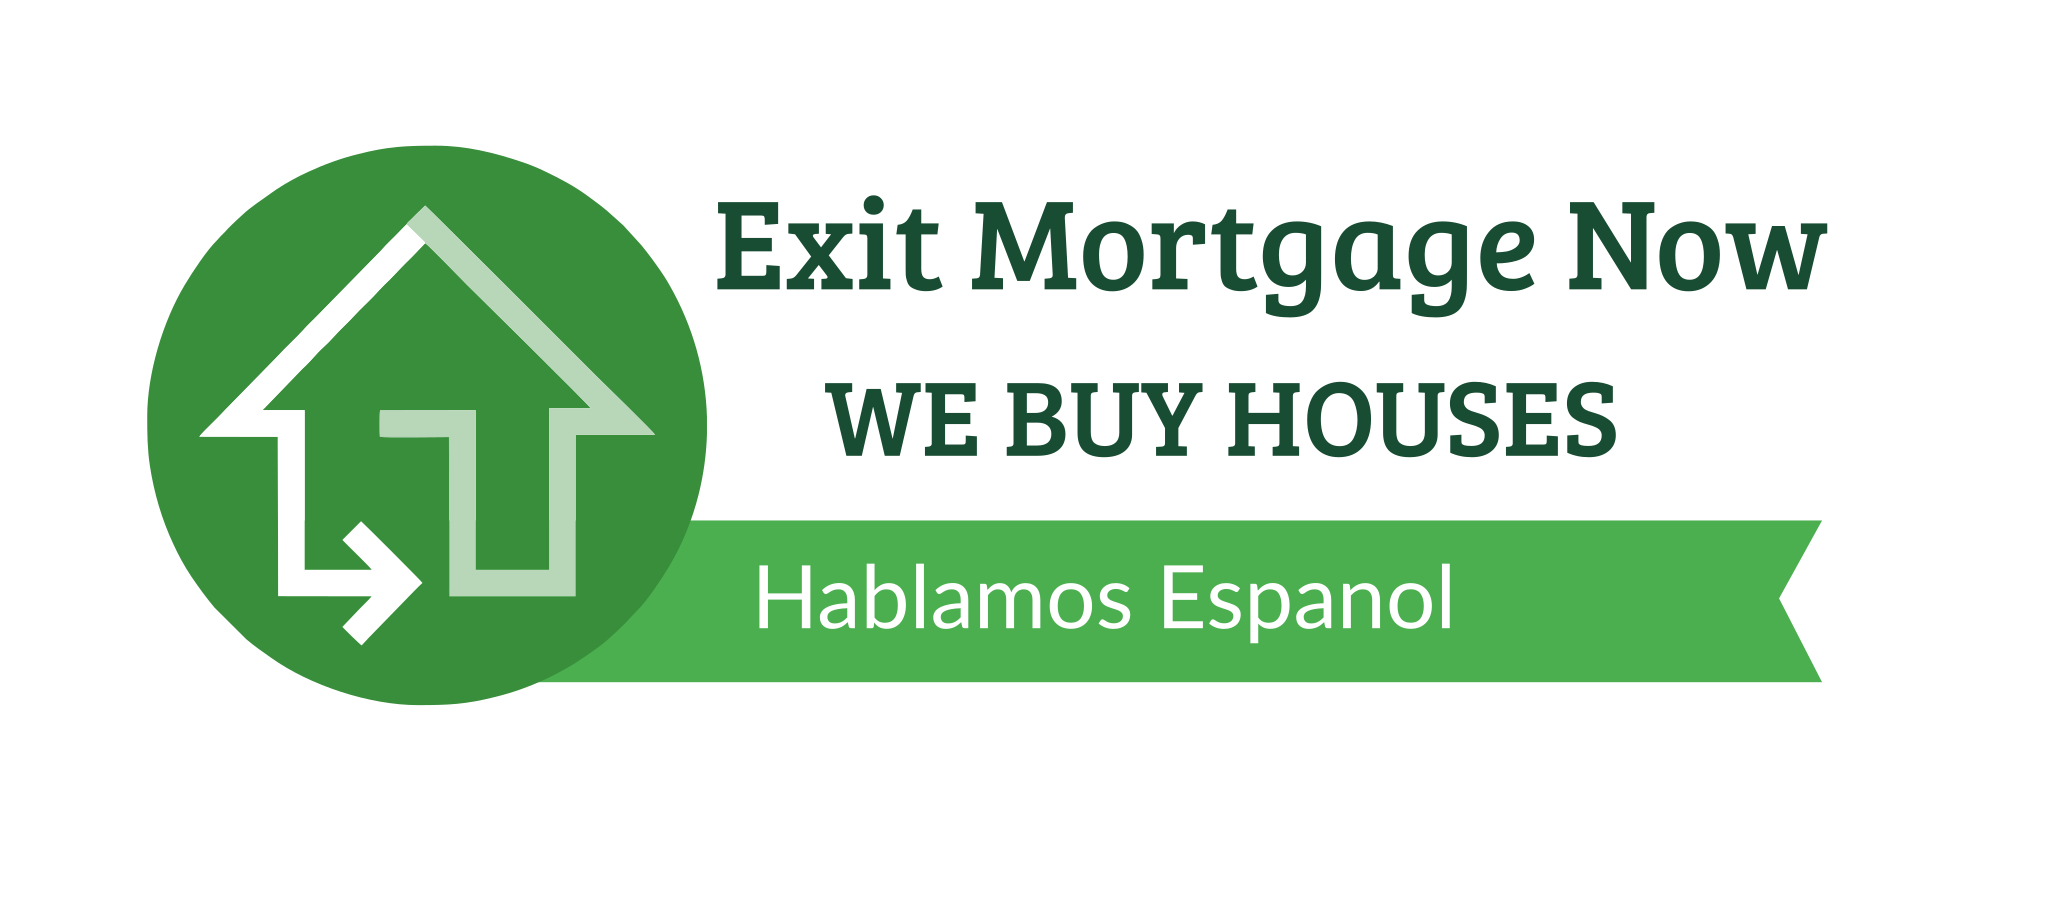 Exit Mortgage Now